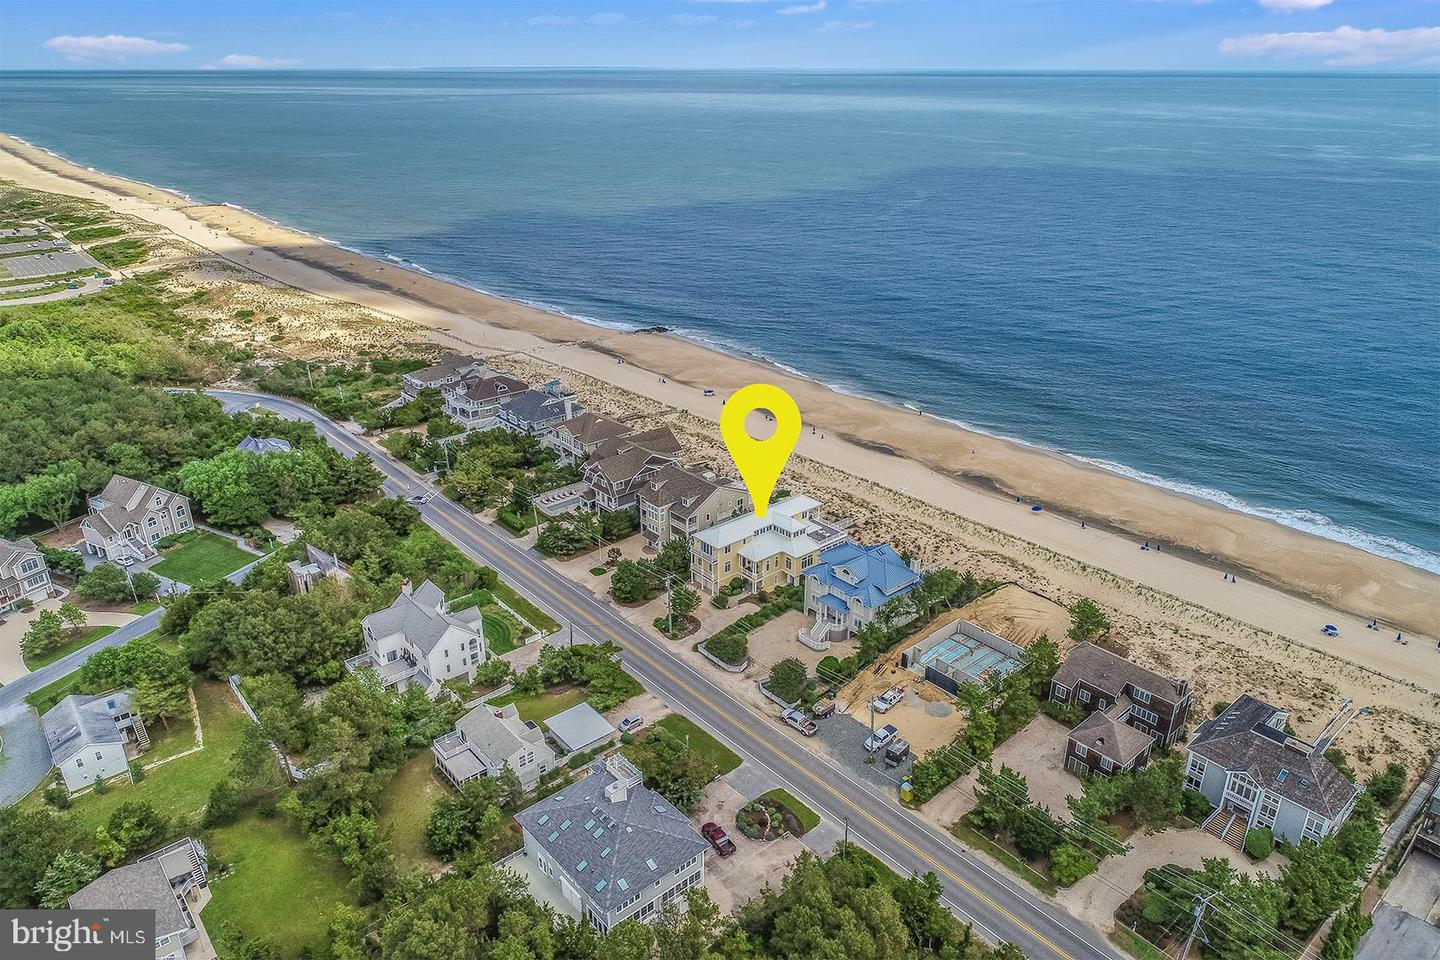 1006125804-301650276543-2019-08-16-15-57-57 Sold Listings - Rehoboth Beach Real Estate - Bryce Lingo and Shaun Tull REALTORS, Rehoboth Beach, Delaware